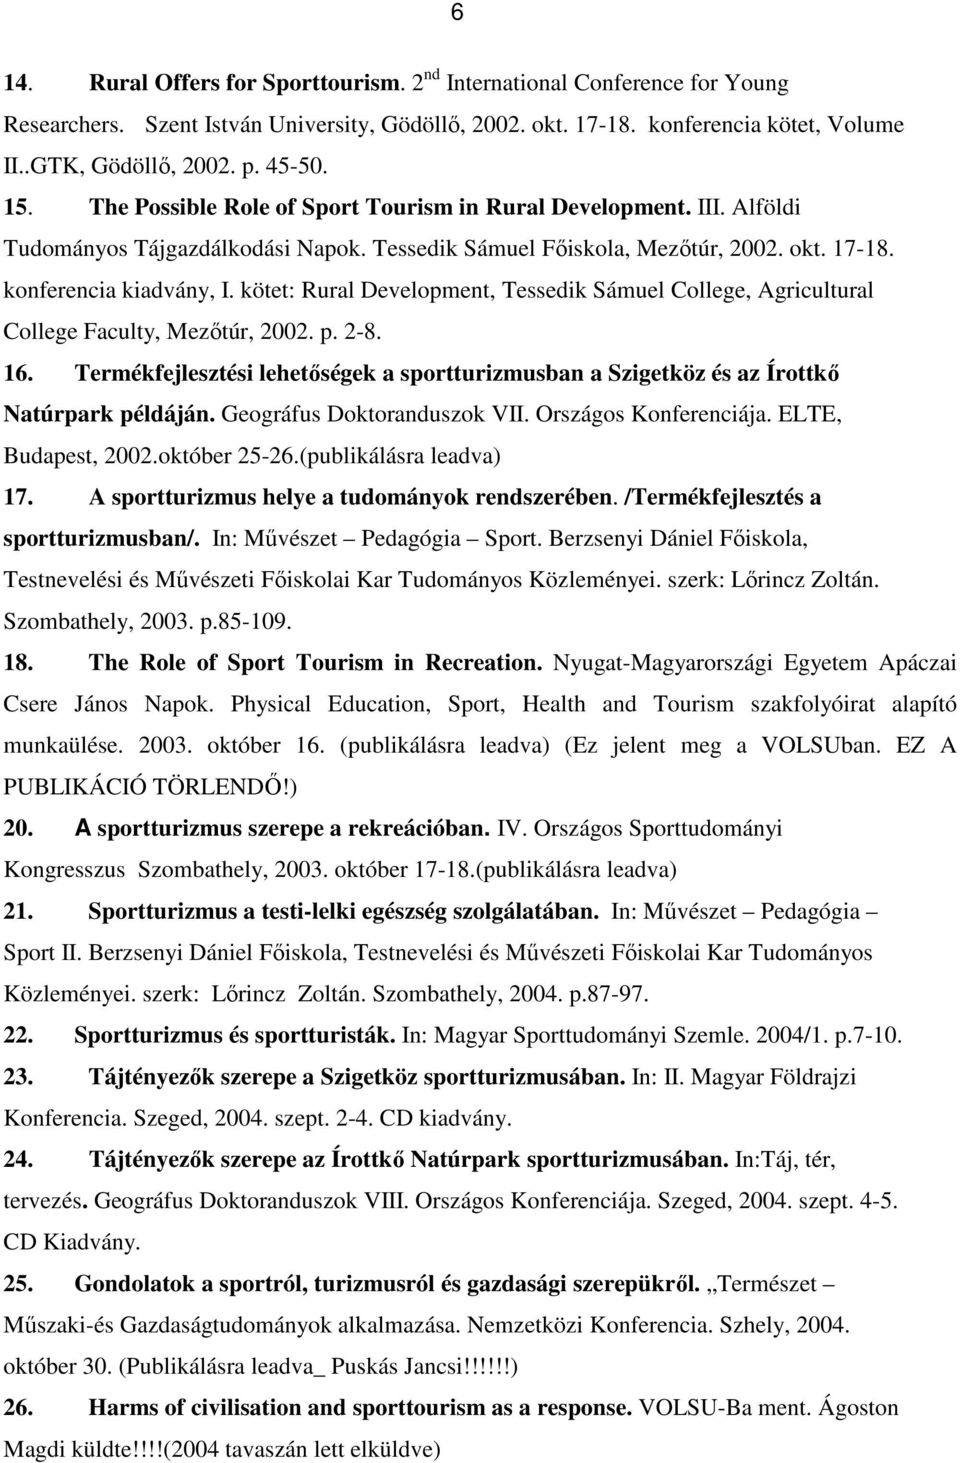 kötet: Rural Development, Tessedik Sámuel College, Agricultural College Faculty, Mezıtúr, 2002. p. 2-8. 16.